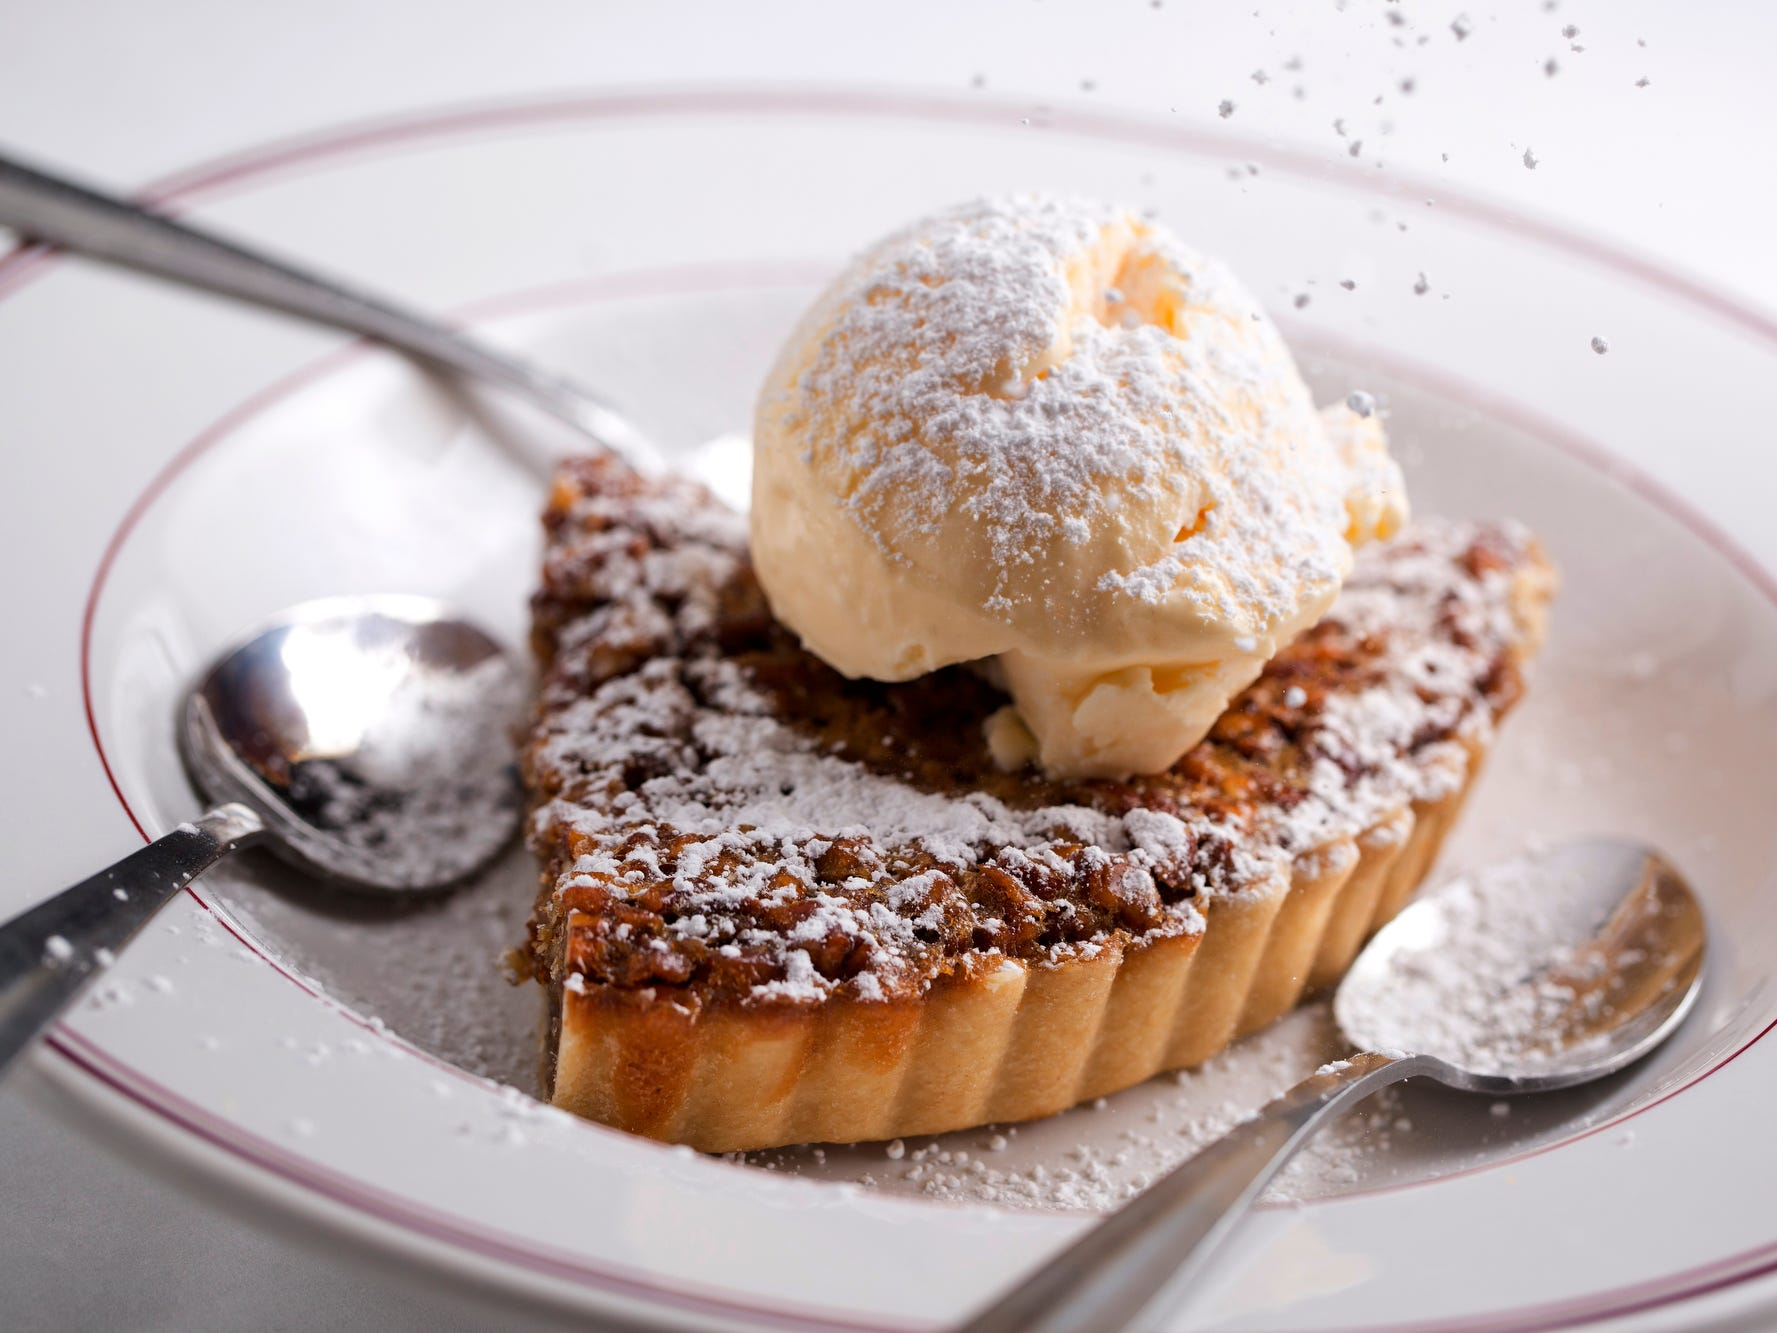 Housemade Southern pecan pie topped with vanilla ice cream at Char Restaurant in Green Hills.